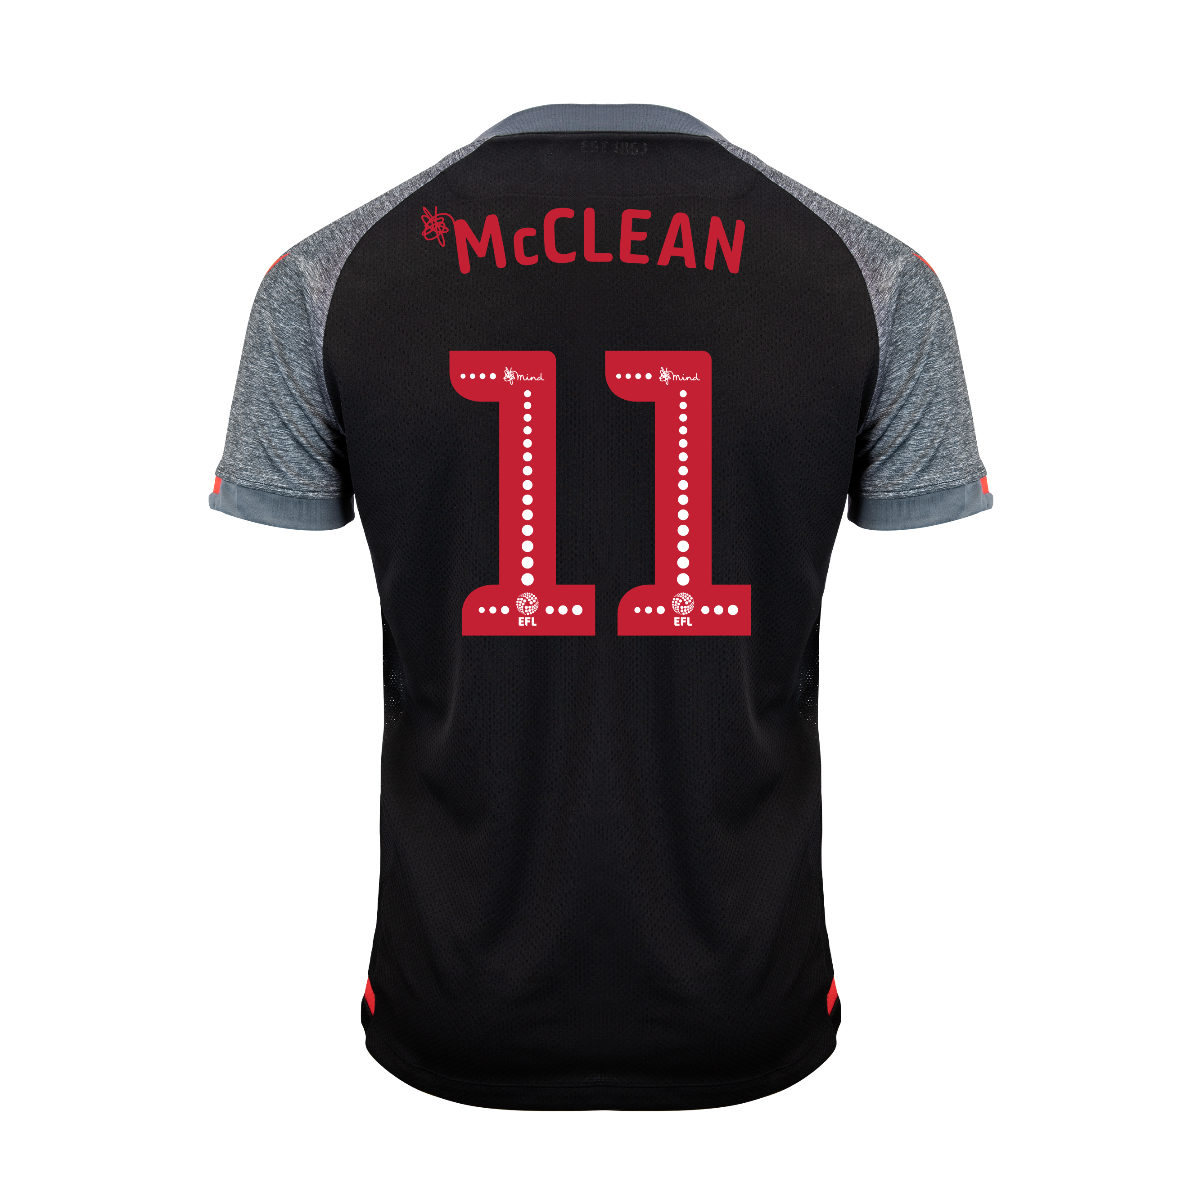 2019/20 Adult Away SS Shirt - McClean